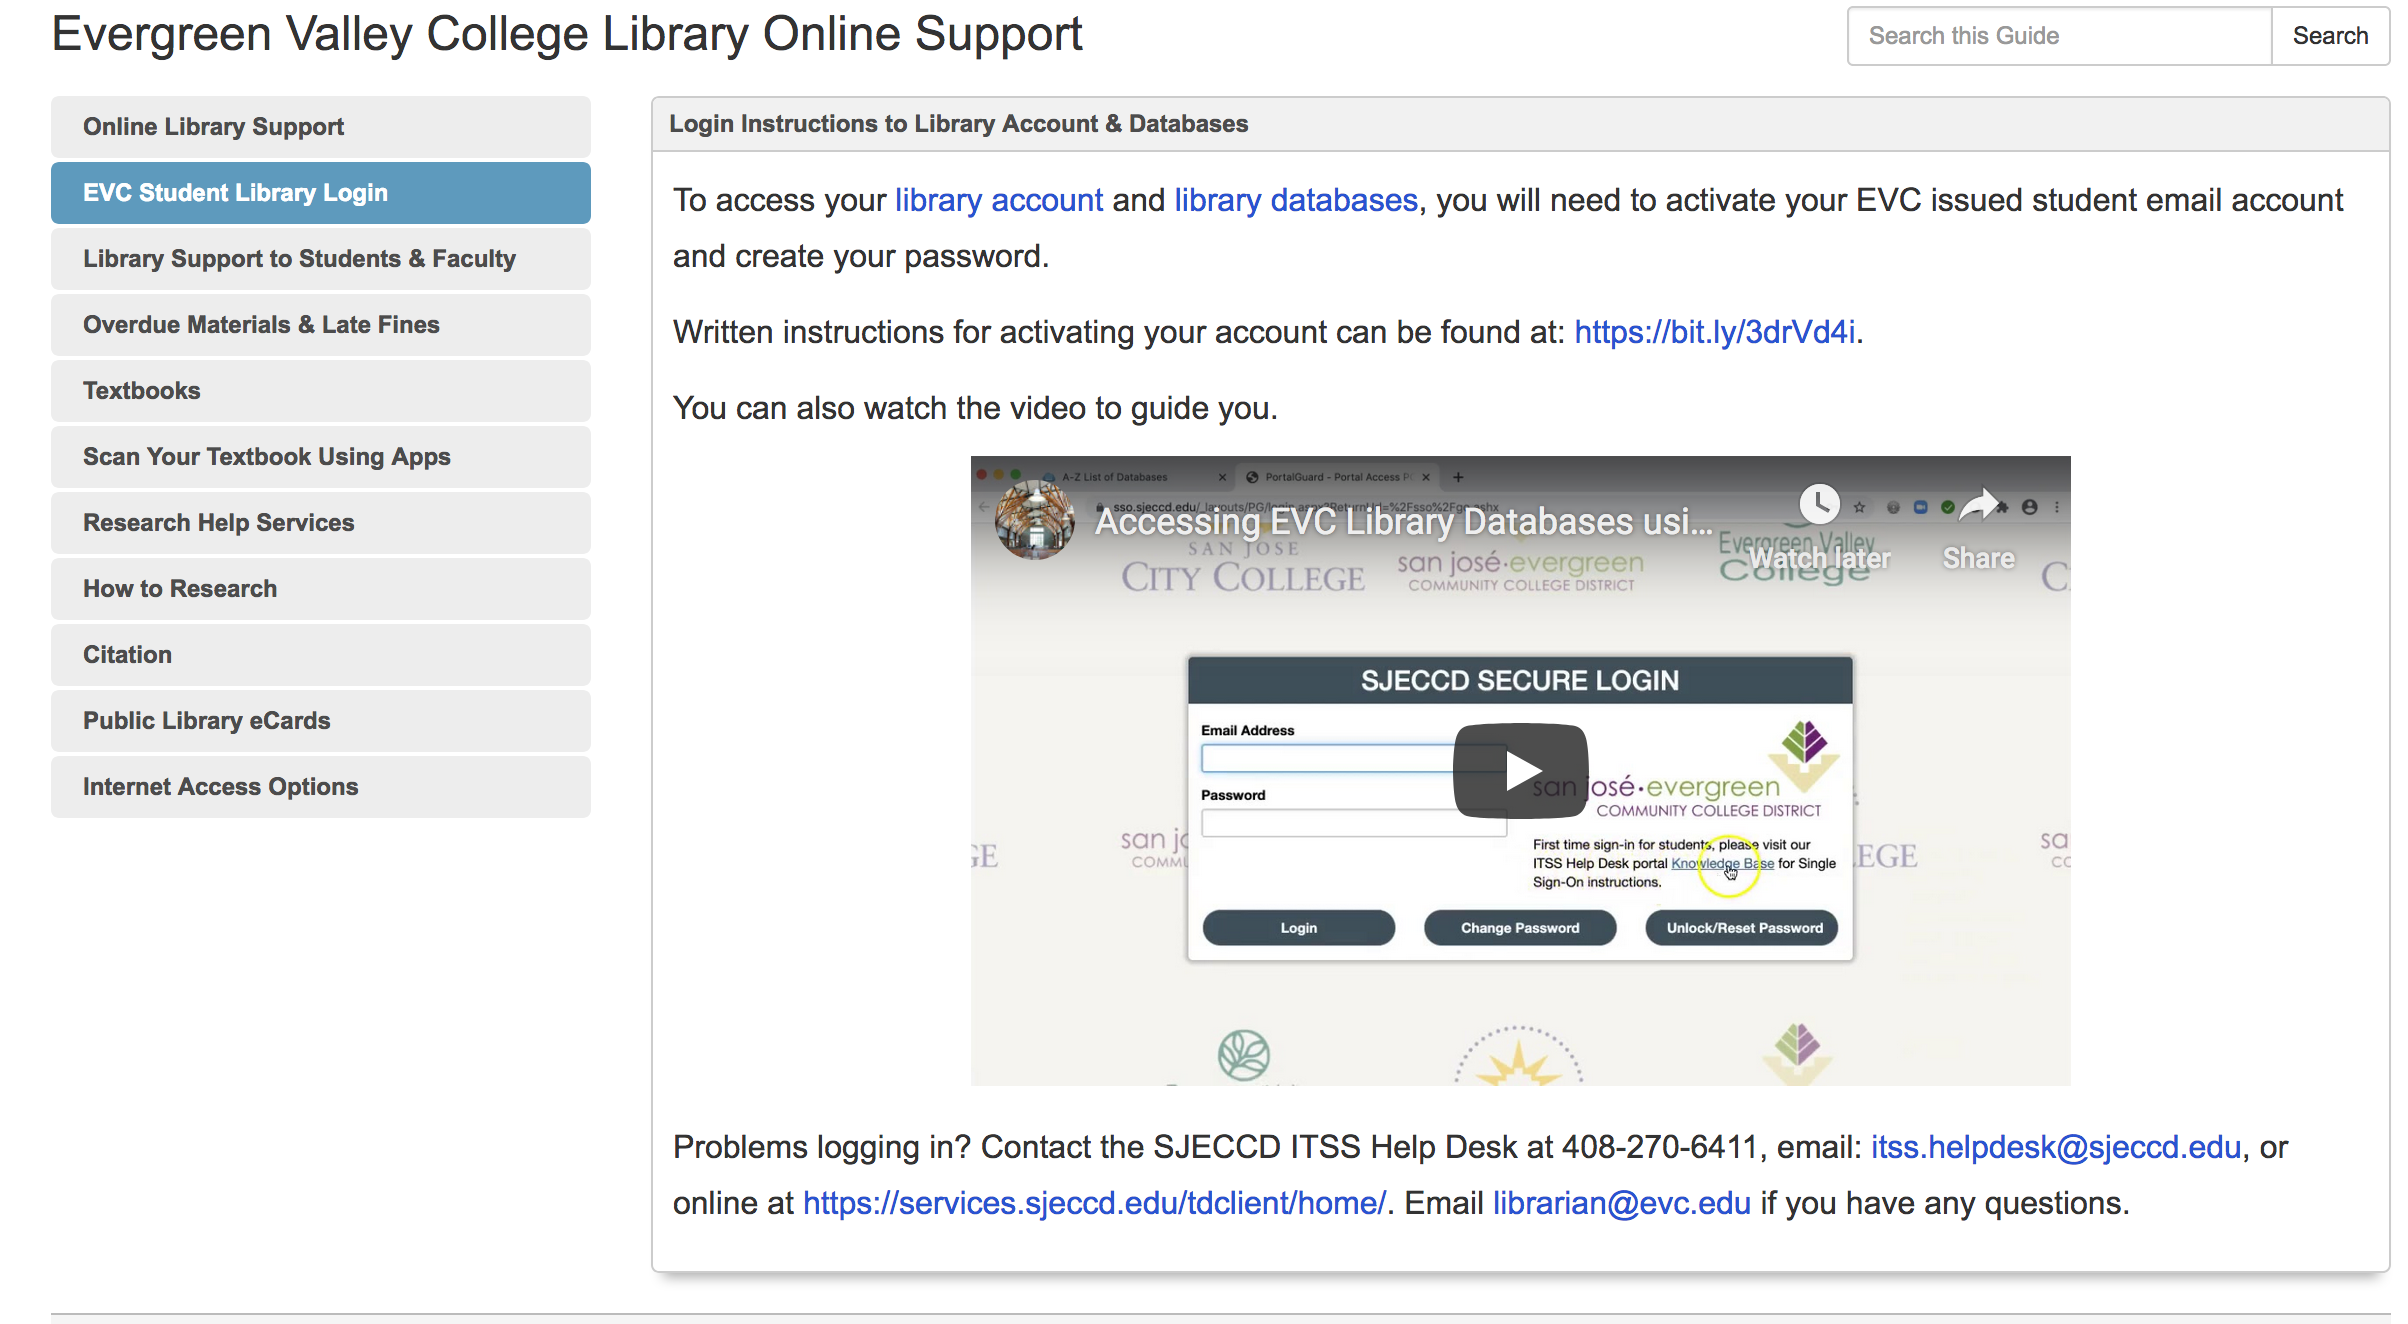 online support webpage graphic